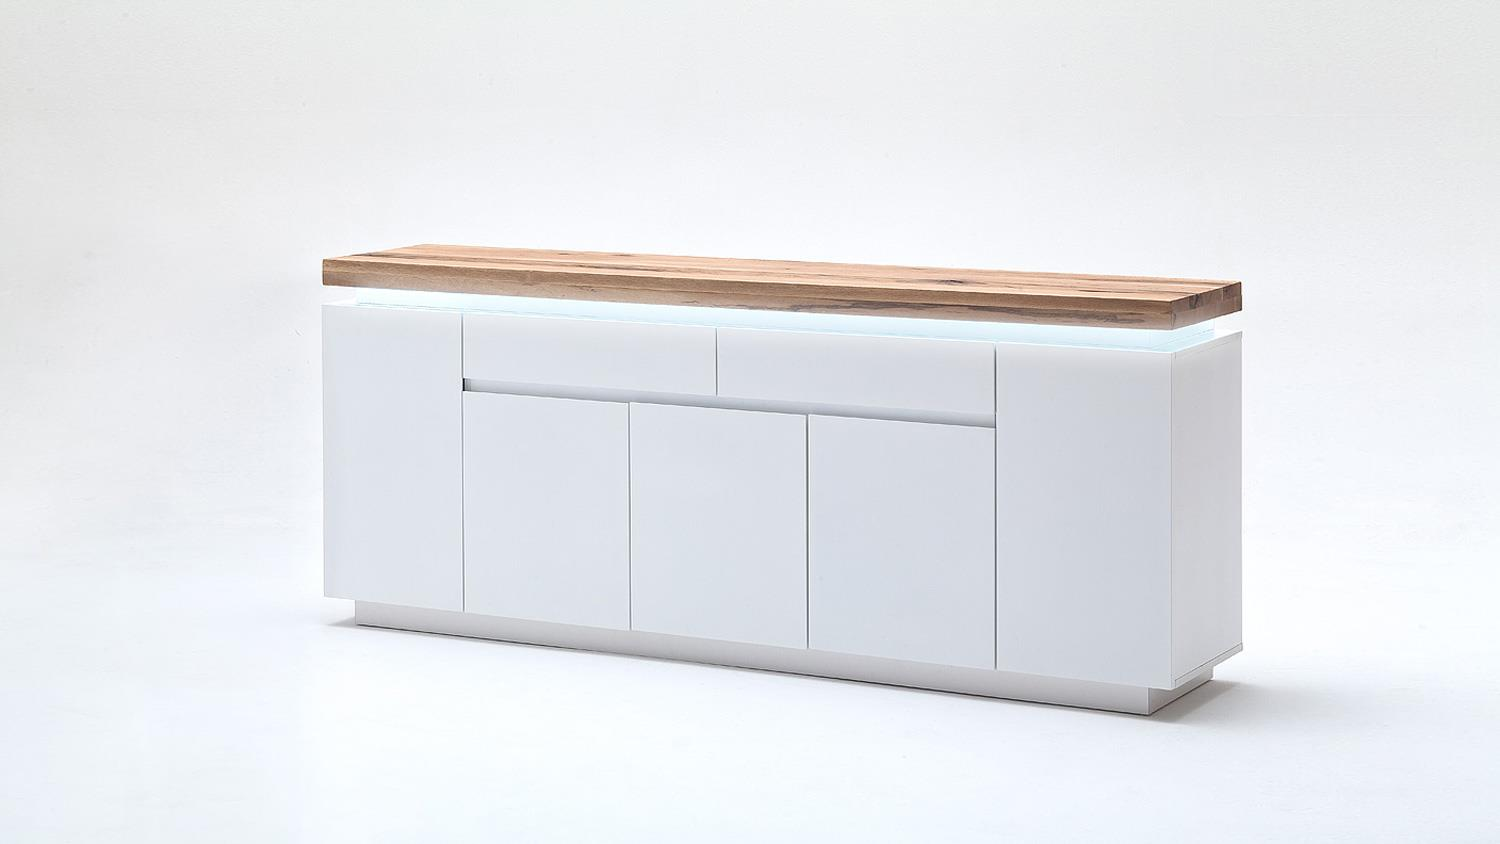 Pin rolf benz sessel 3100 on pinterest for Sideboard romina